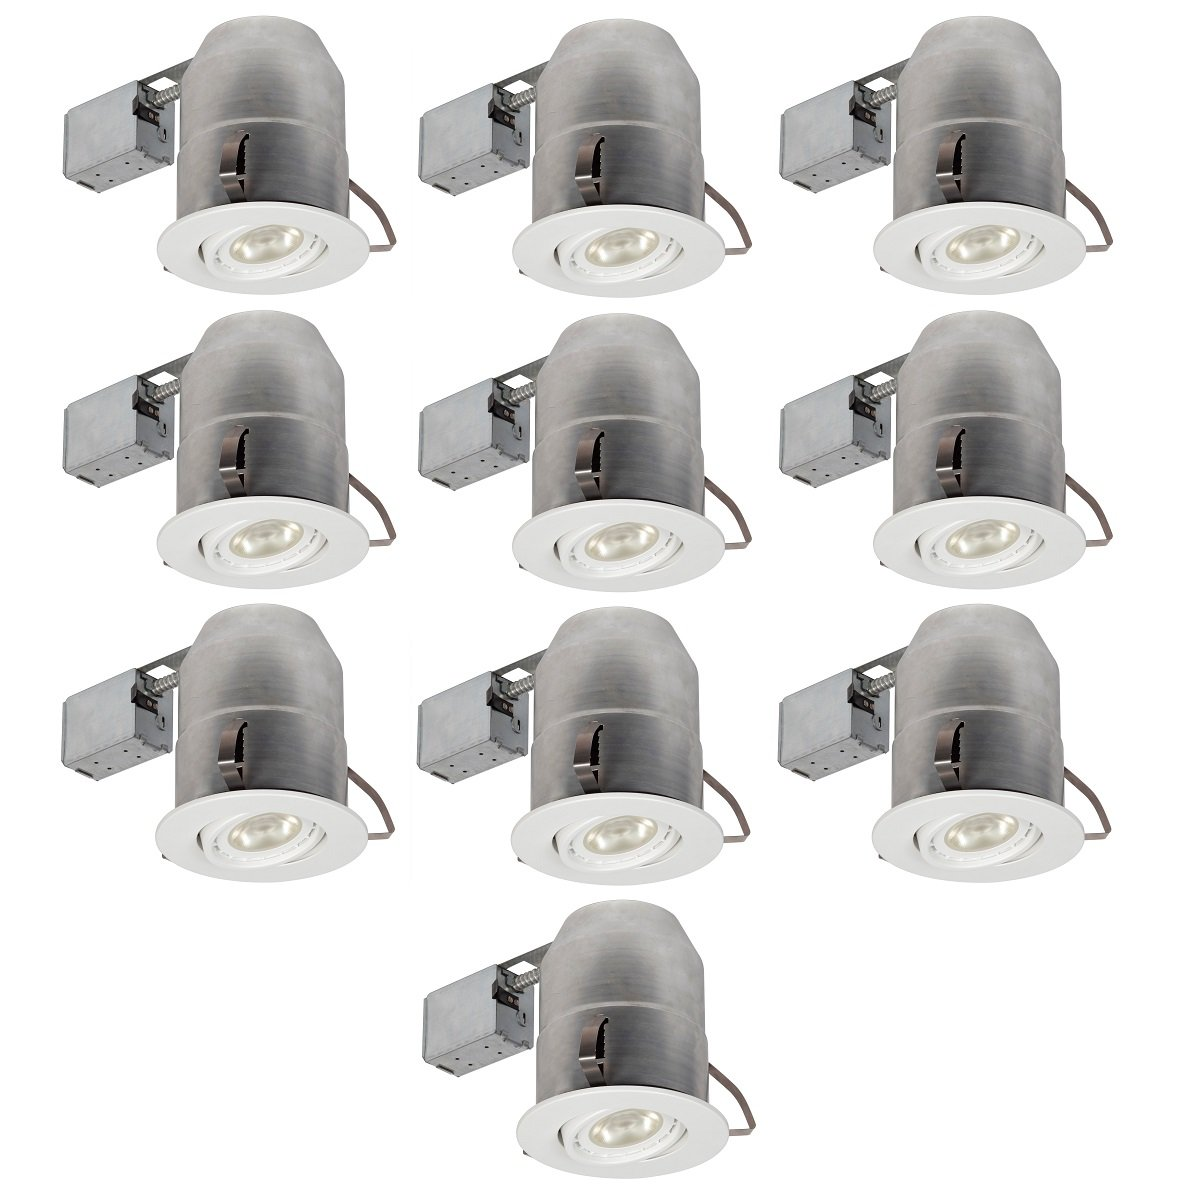 Globe Electric 6'' Swivel Spotlight Round Recessed Lighting Kit Dimmable Downlight, Contractor's 10-Pack, White Finish, 9100901